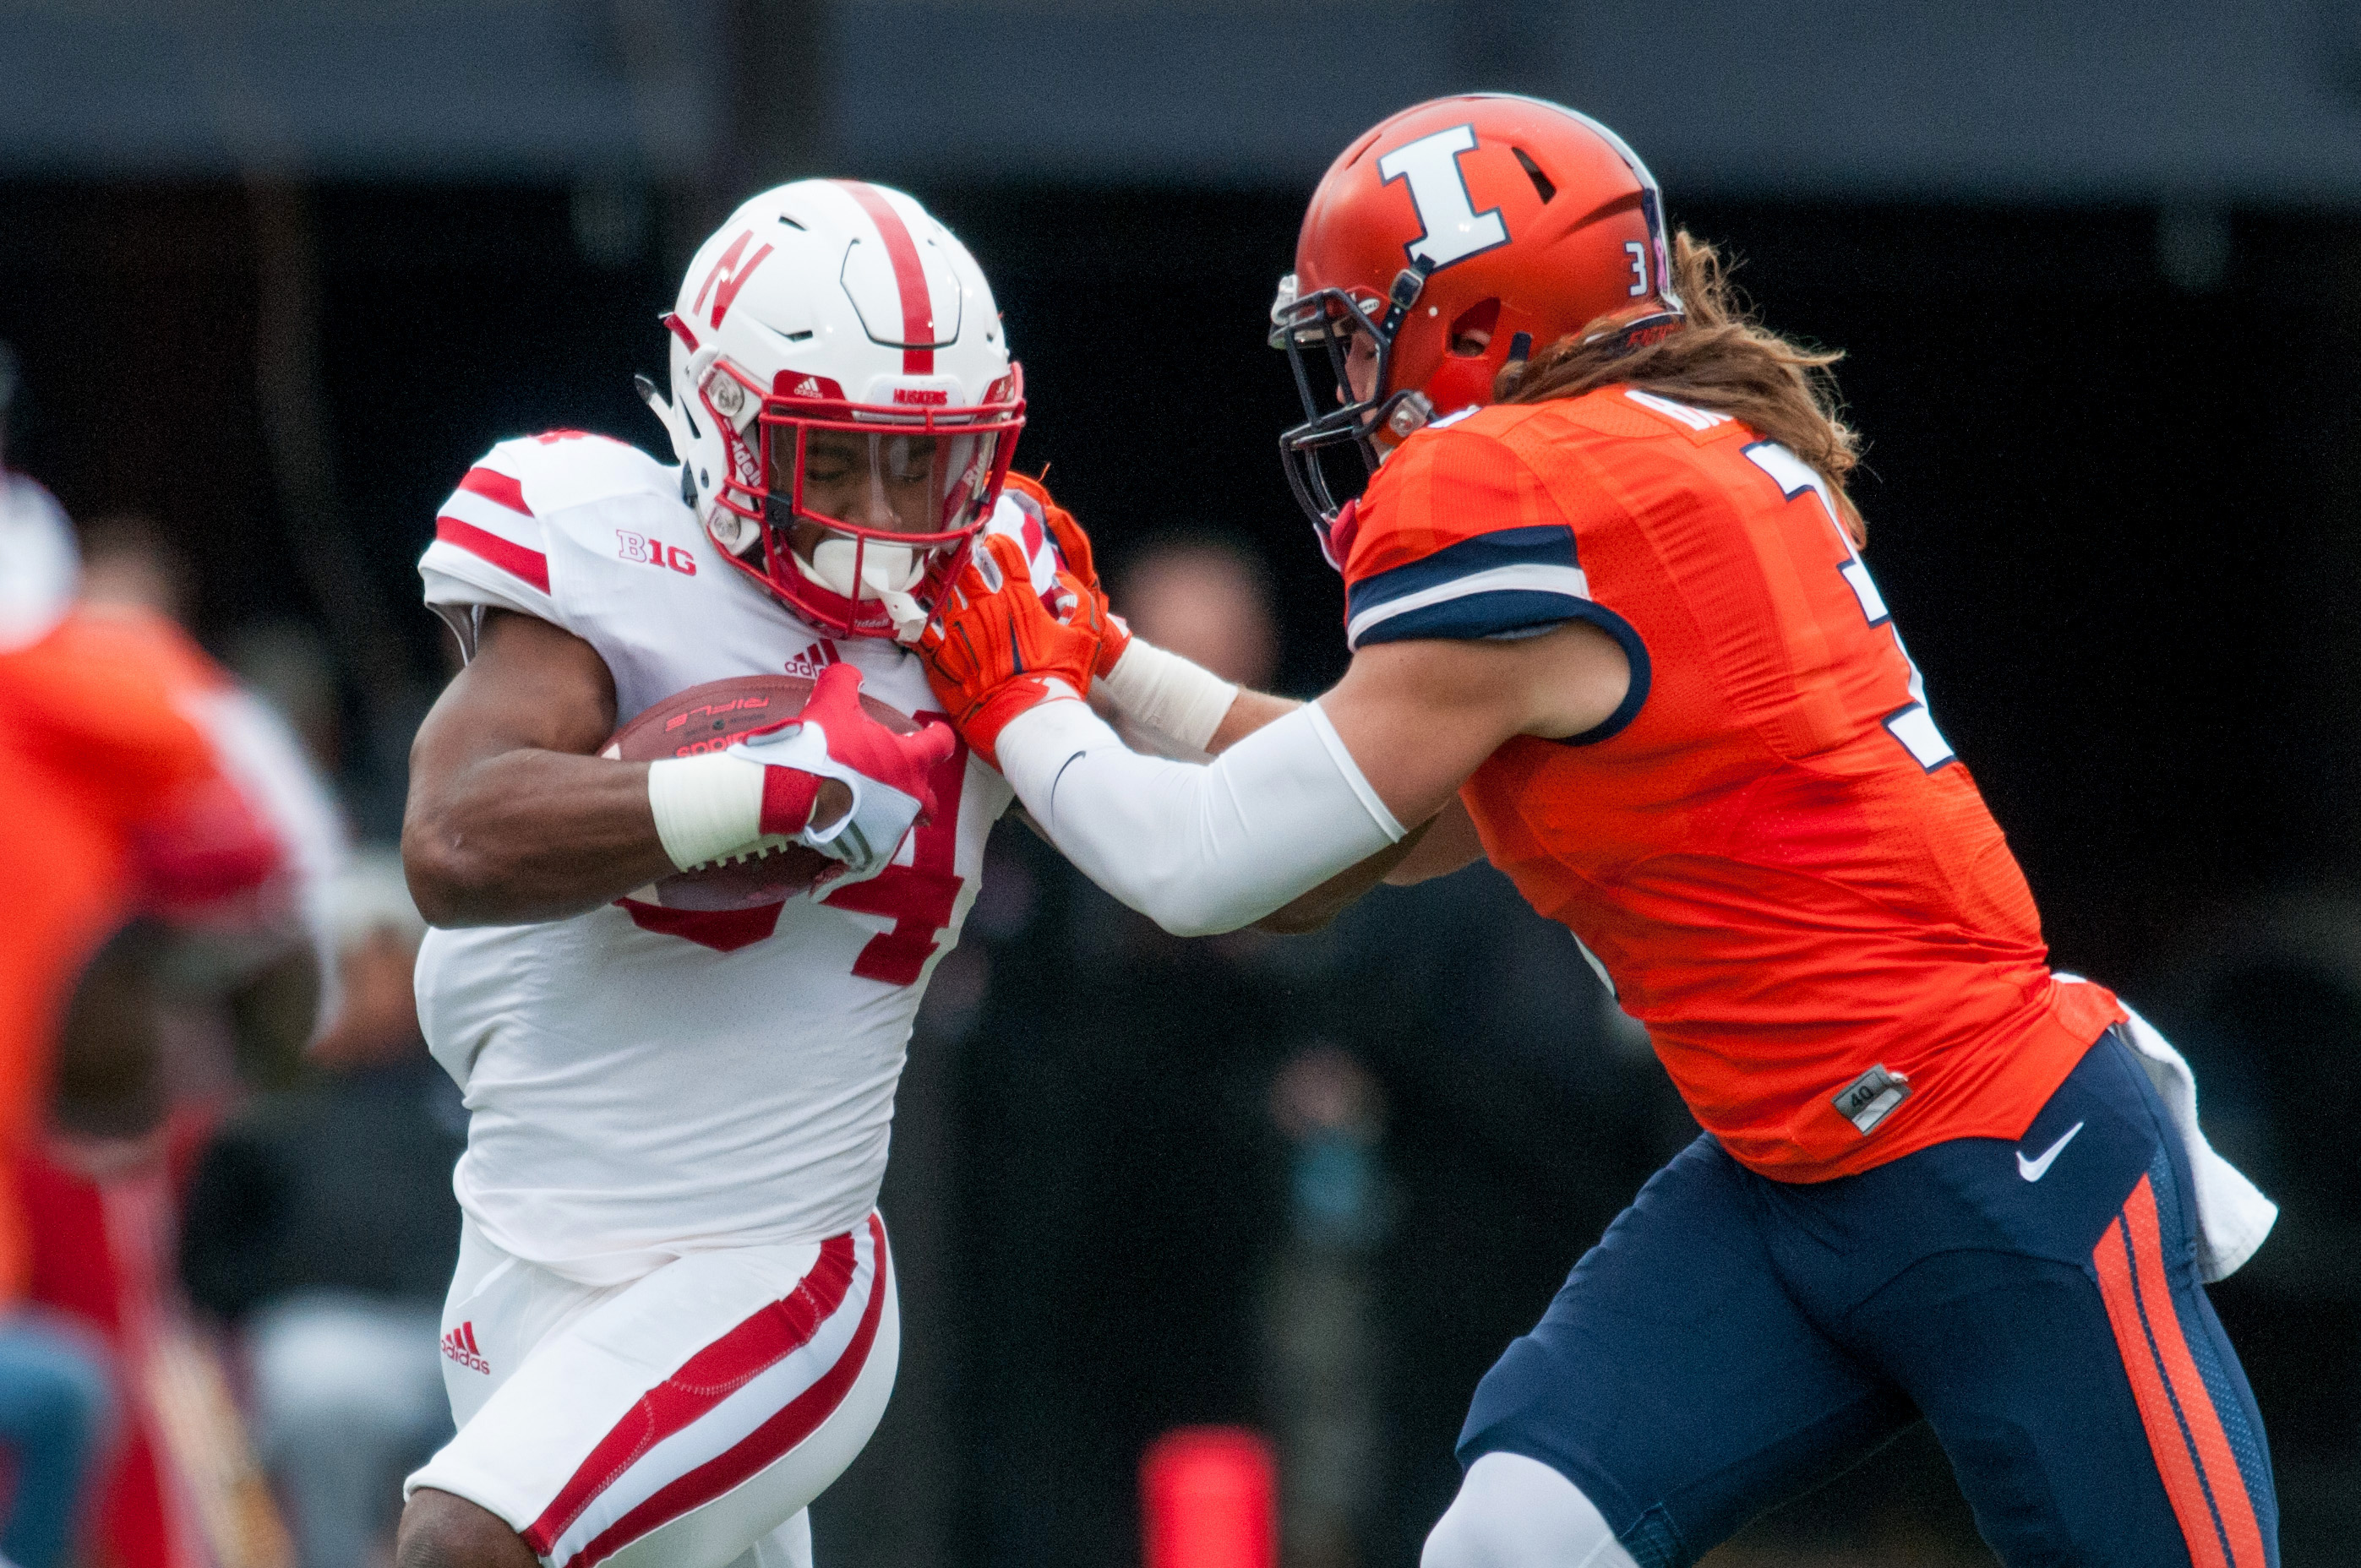 Nebraska running back Terrell Newby (34) tries to avoid a tackle by Illinois defensive back Taylor Barton (3) during the first quarter of an NCAA football game Saturday, Oct. 3, 2015, at Memorial Stadium in Champaign, Ill.  (AP Photo/Bradley Leeb)